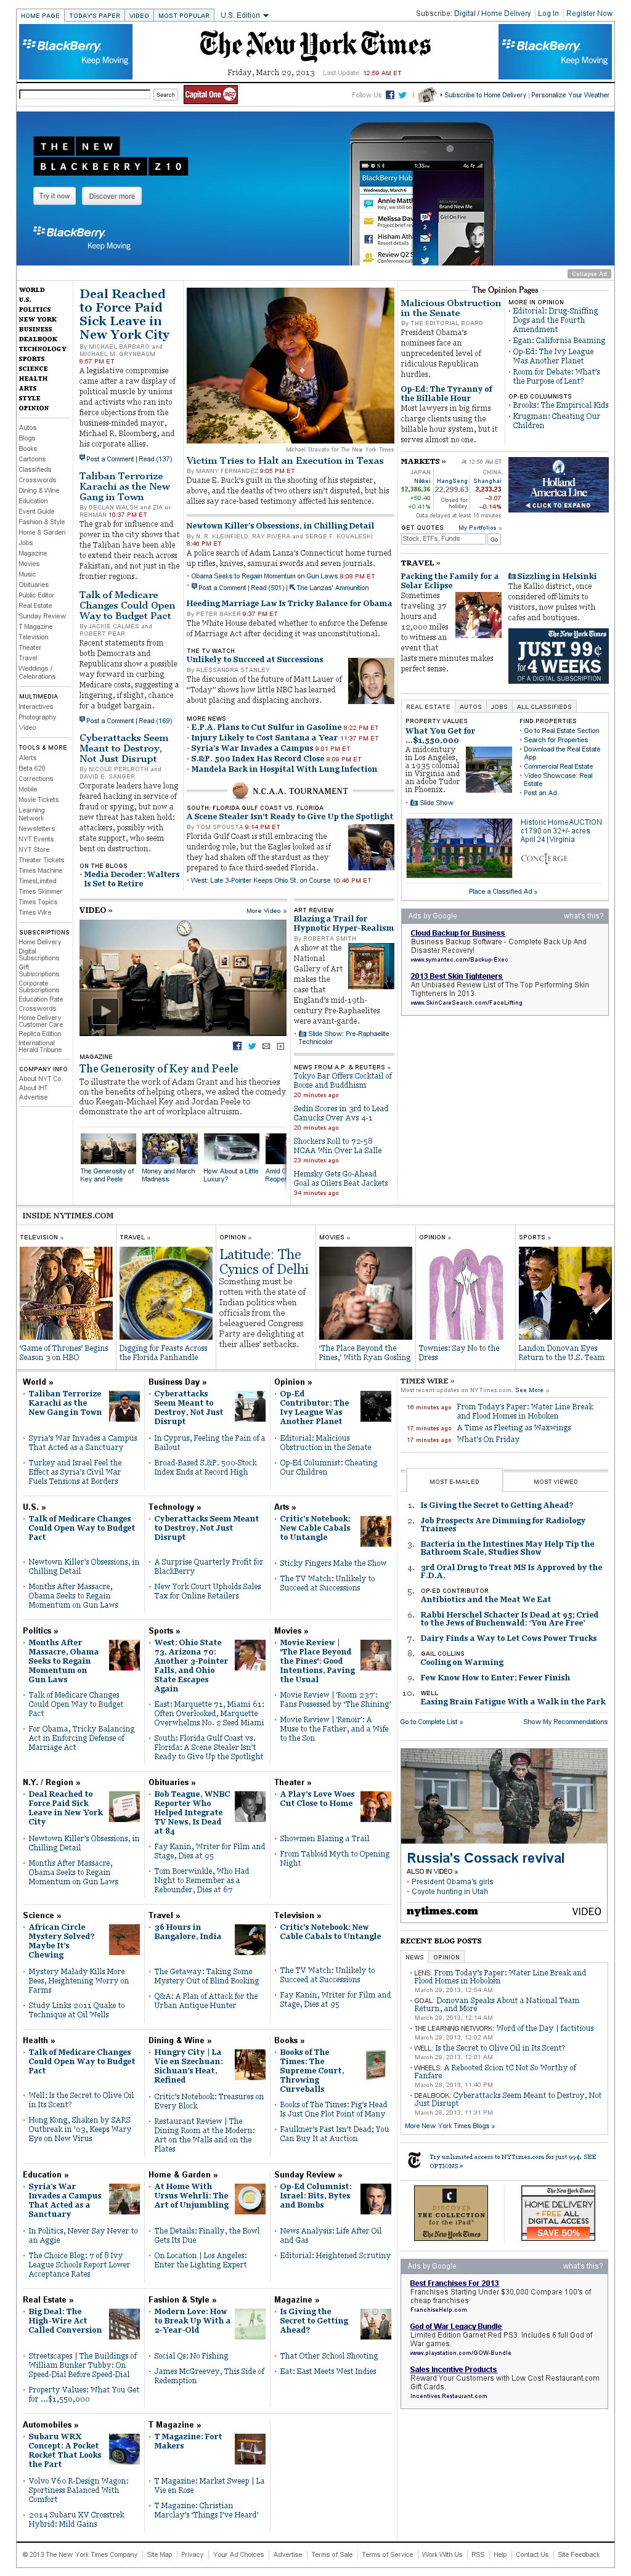 The New York Times at Friday March 29, 2013, 5:17 a.m. UTC